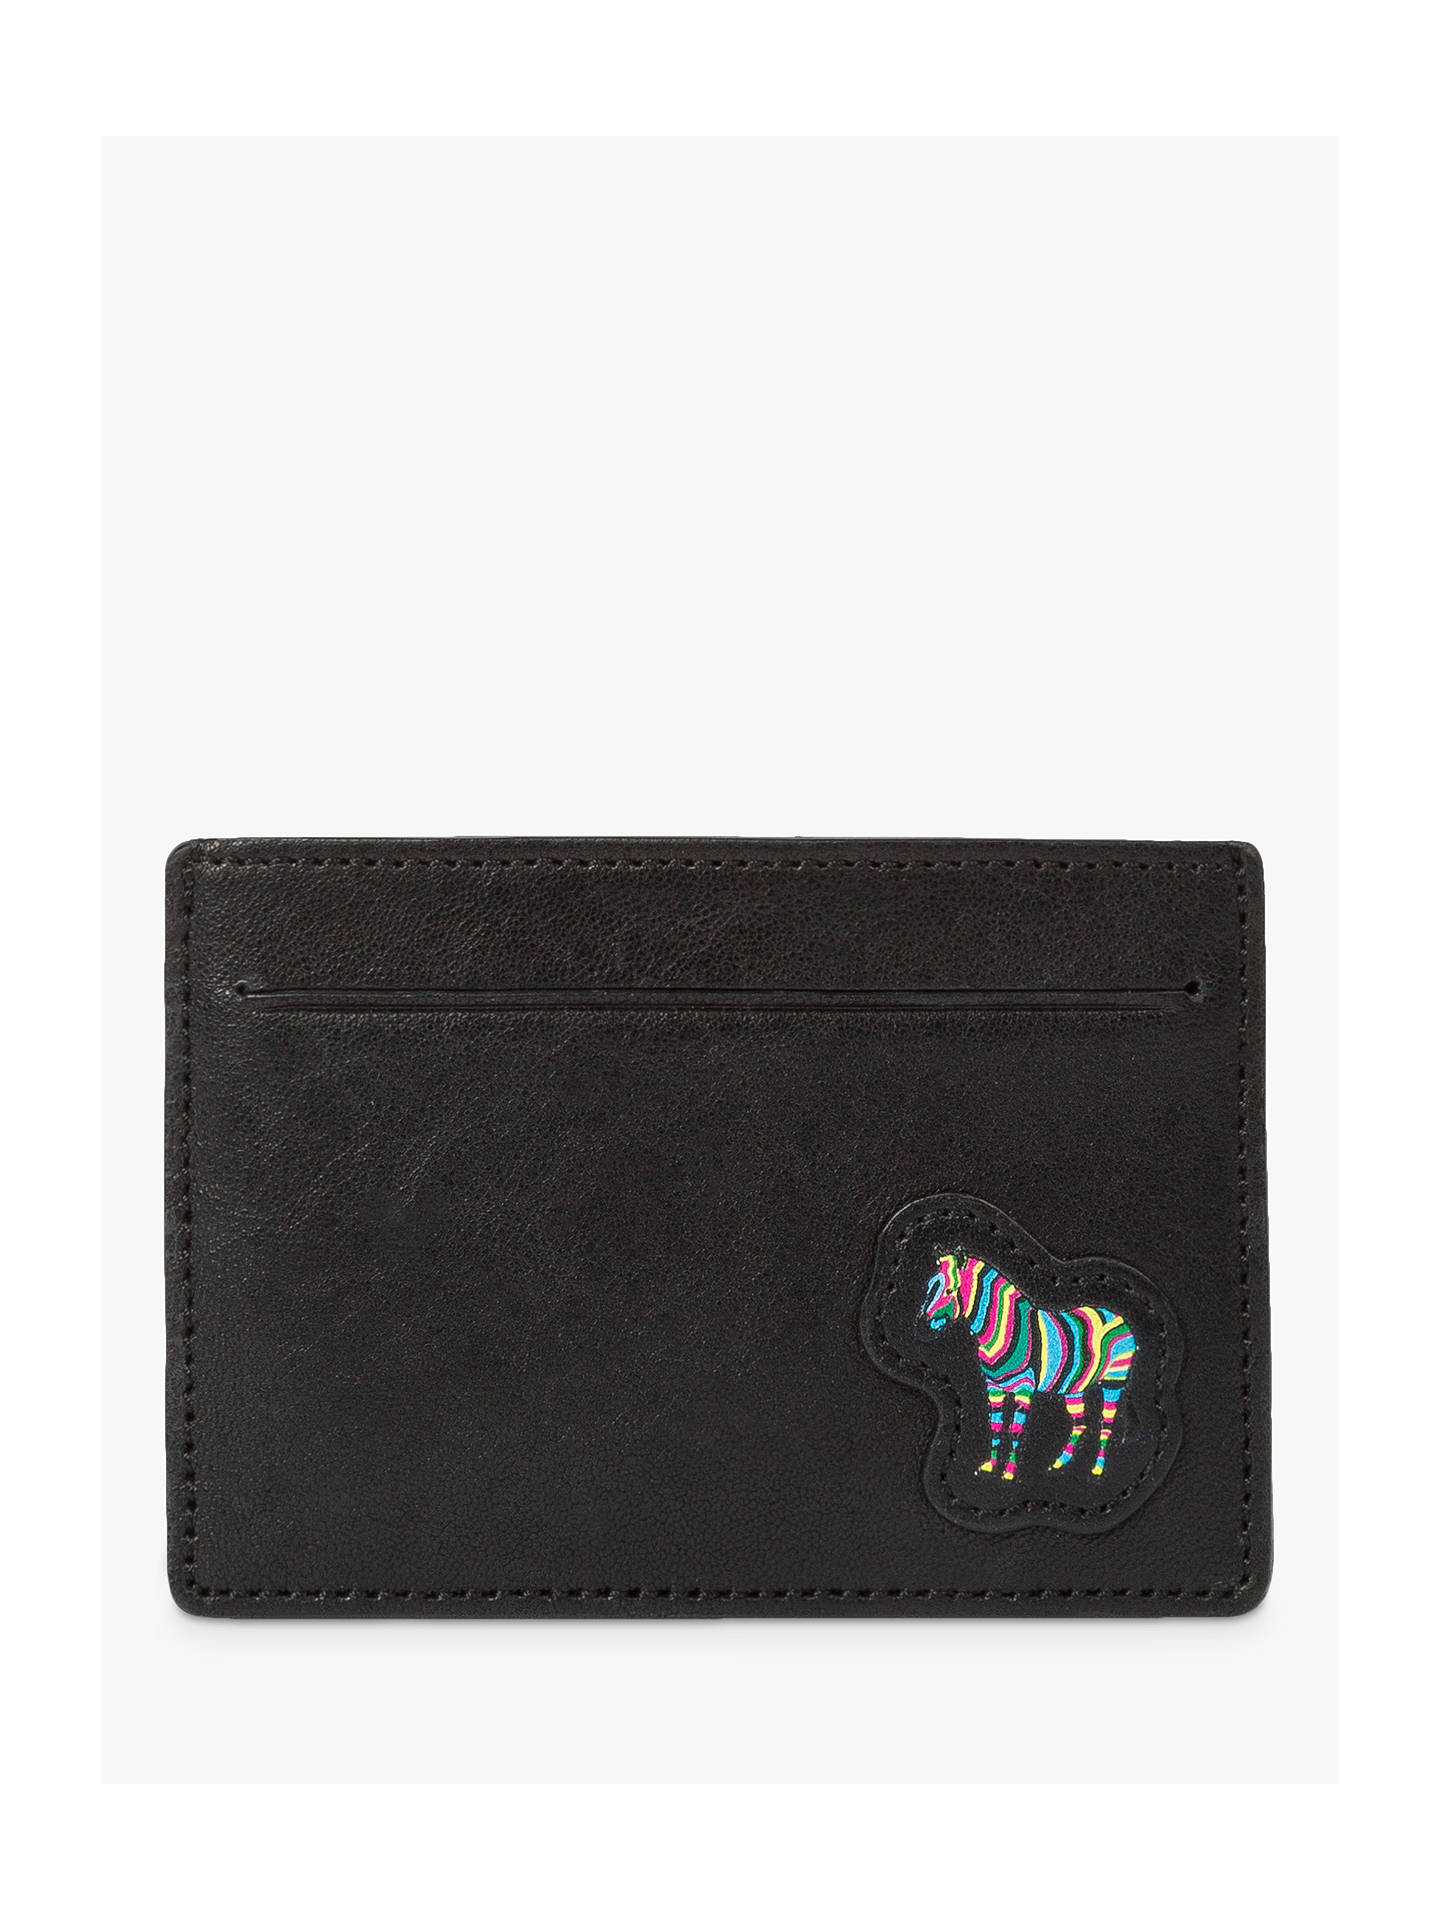 d179fe4608a Buy Paul Smith Zebra Print Leather Card Holder, Black Online at  johnlewis.com ...